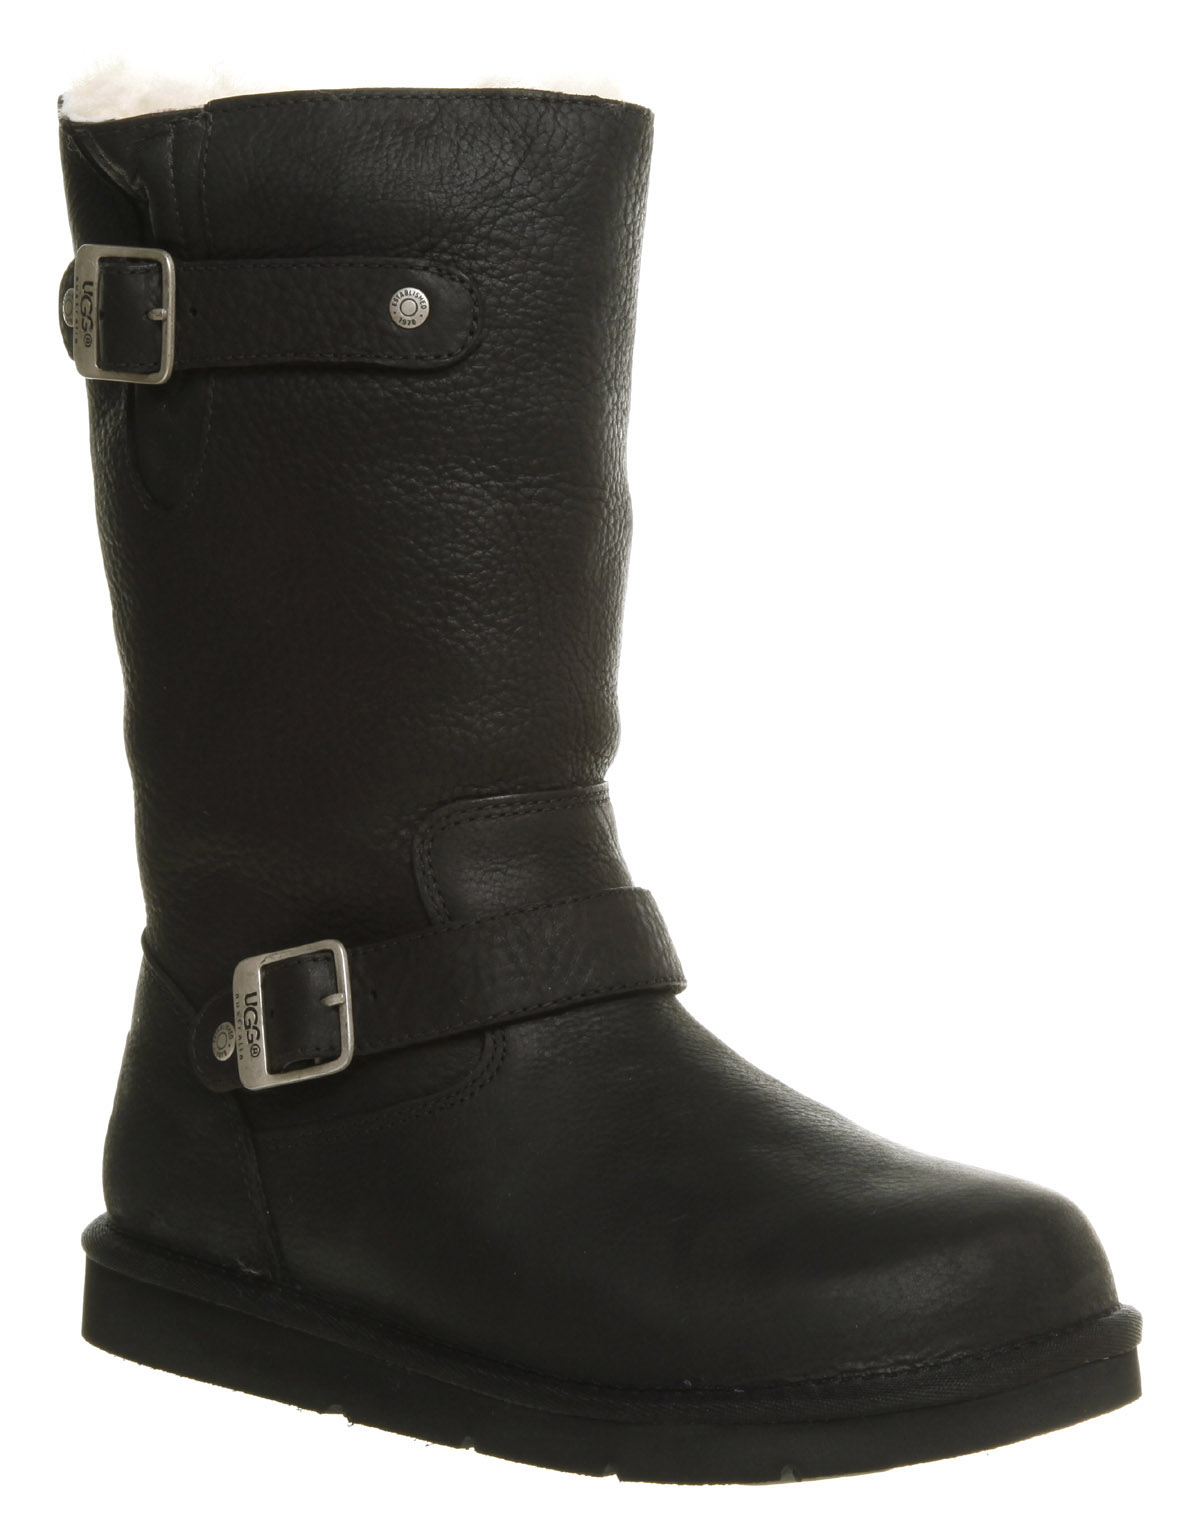 Excellent   Boots  Womens Black Biker Leather Style Flat Wide Calf Boots